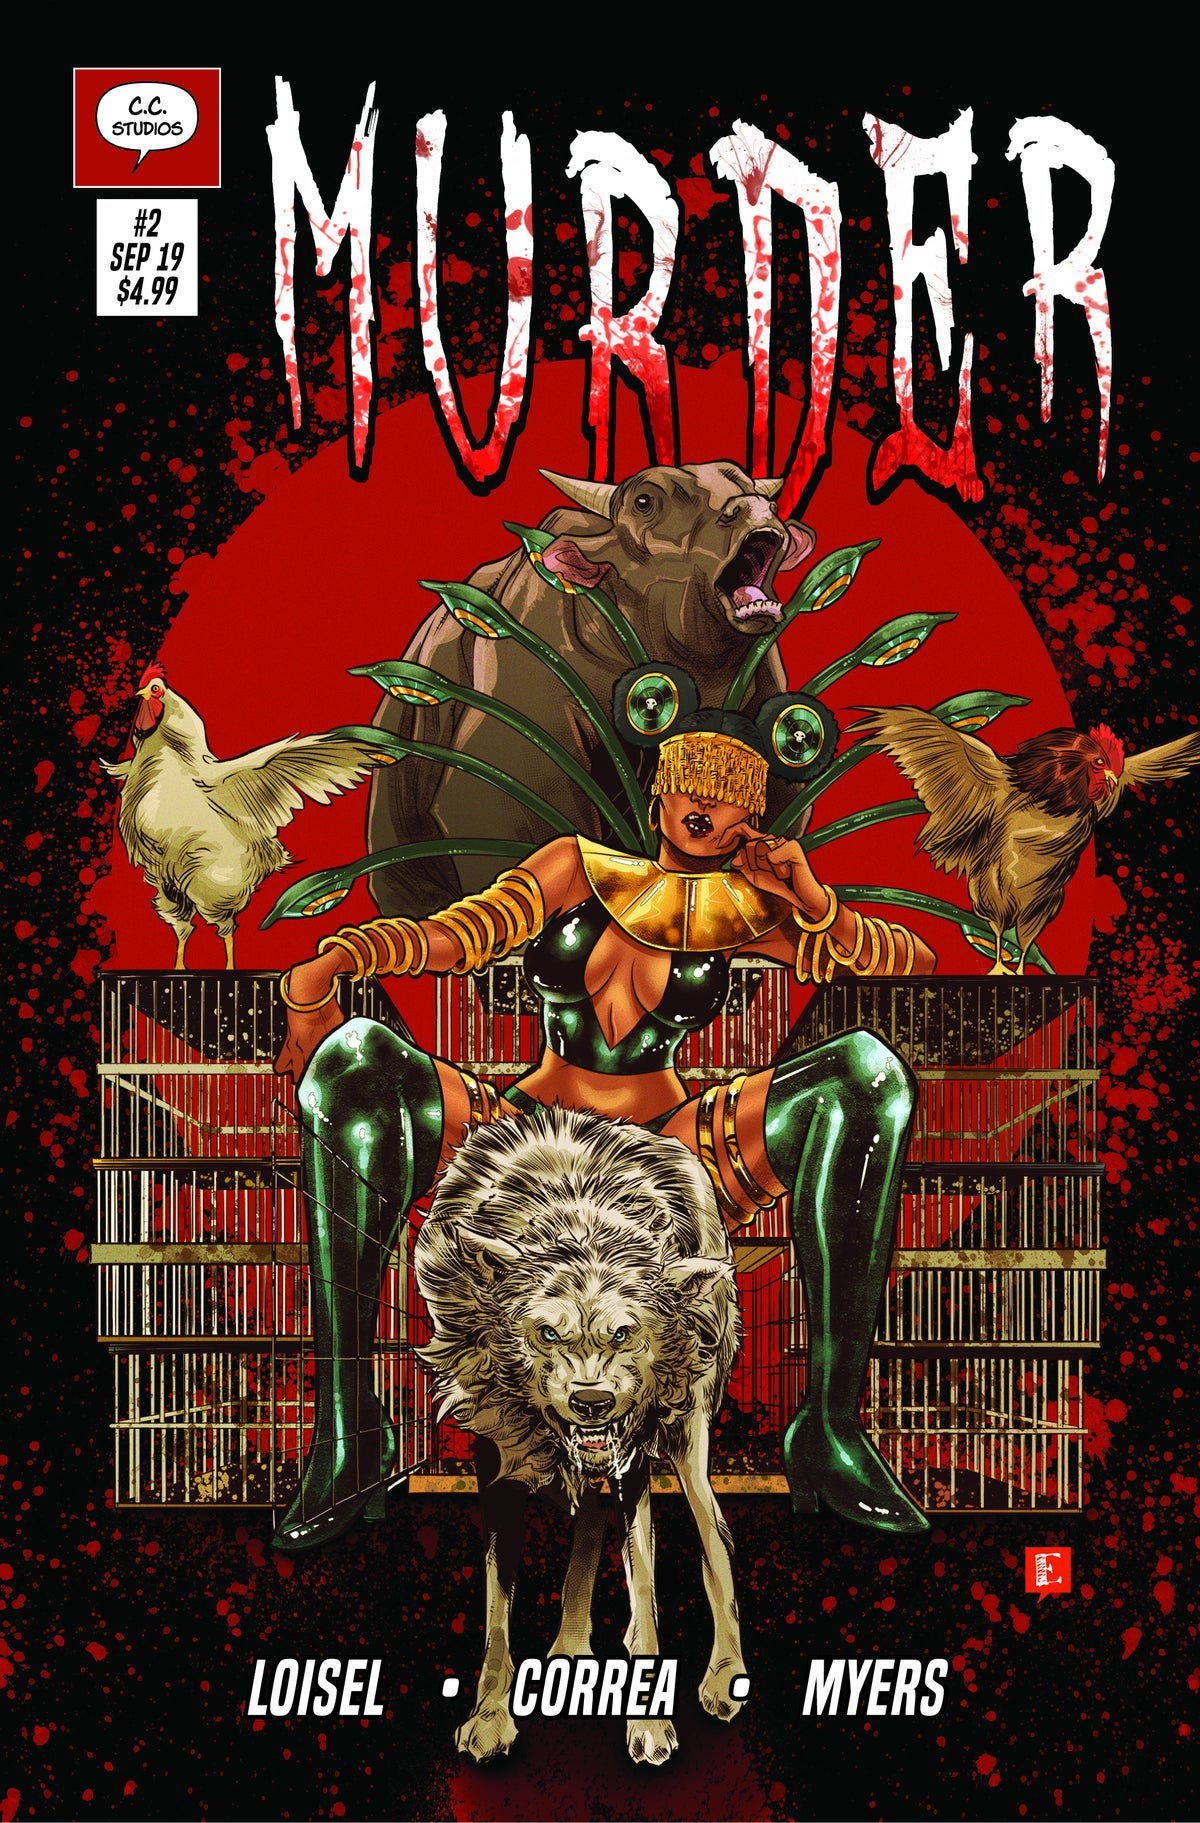 Image of Murder issue 2